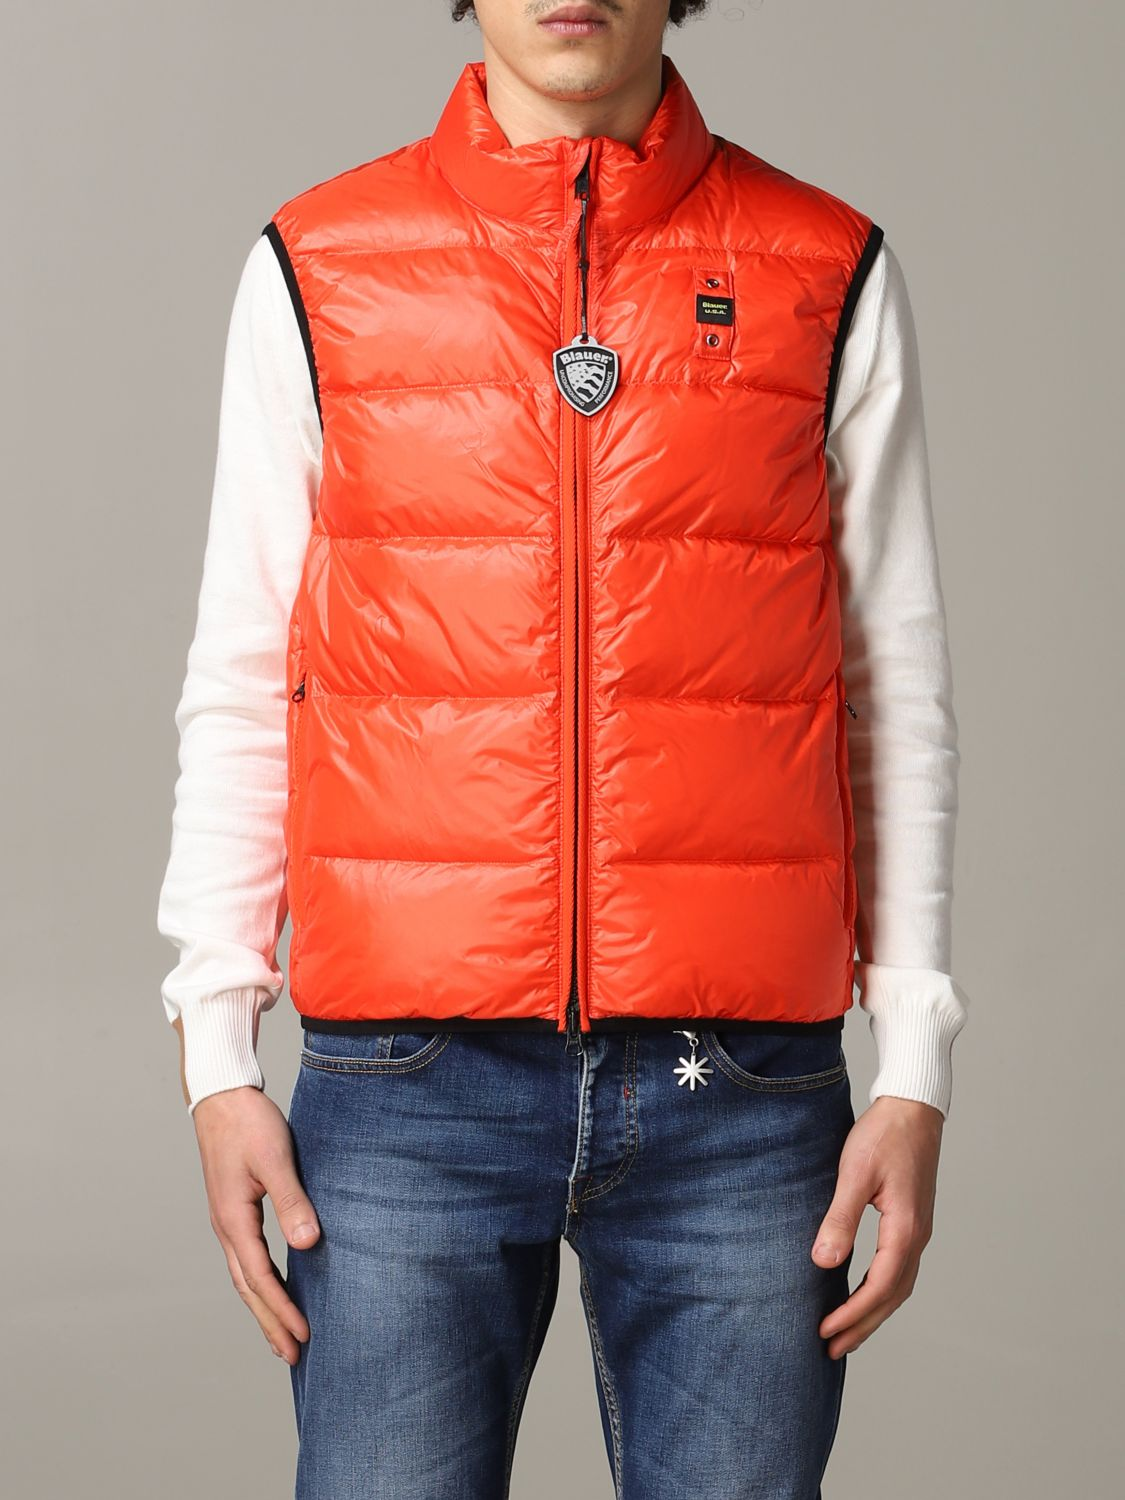 Suit vest Blauer: Suit vest men Blauer orange 1